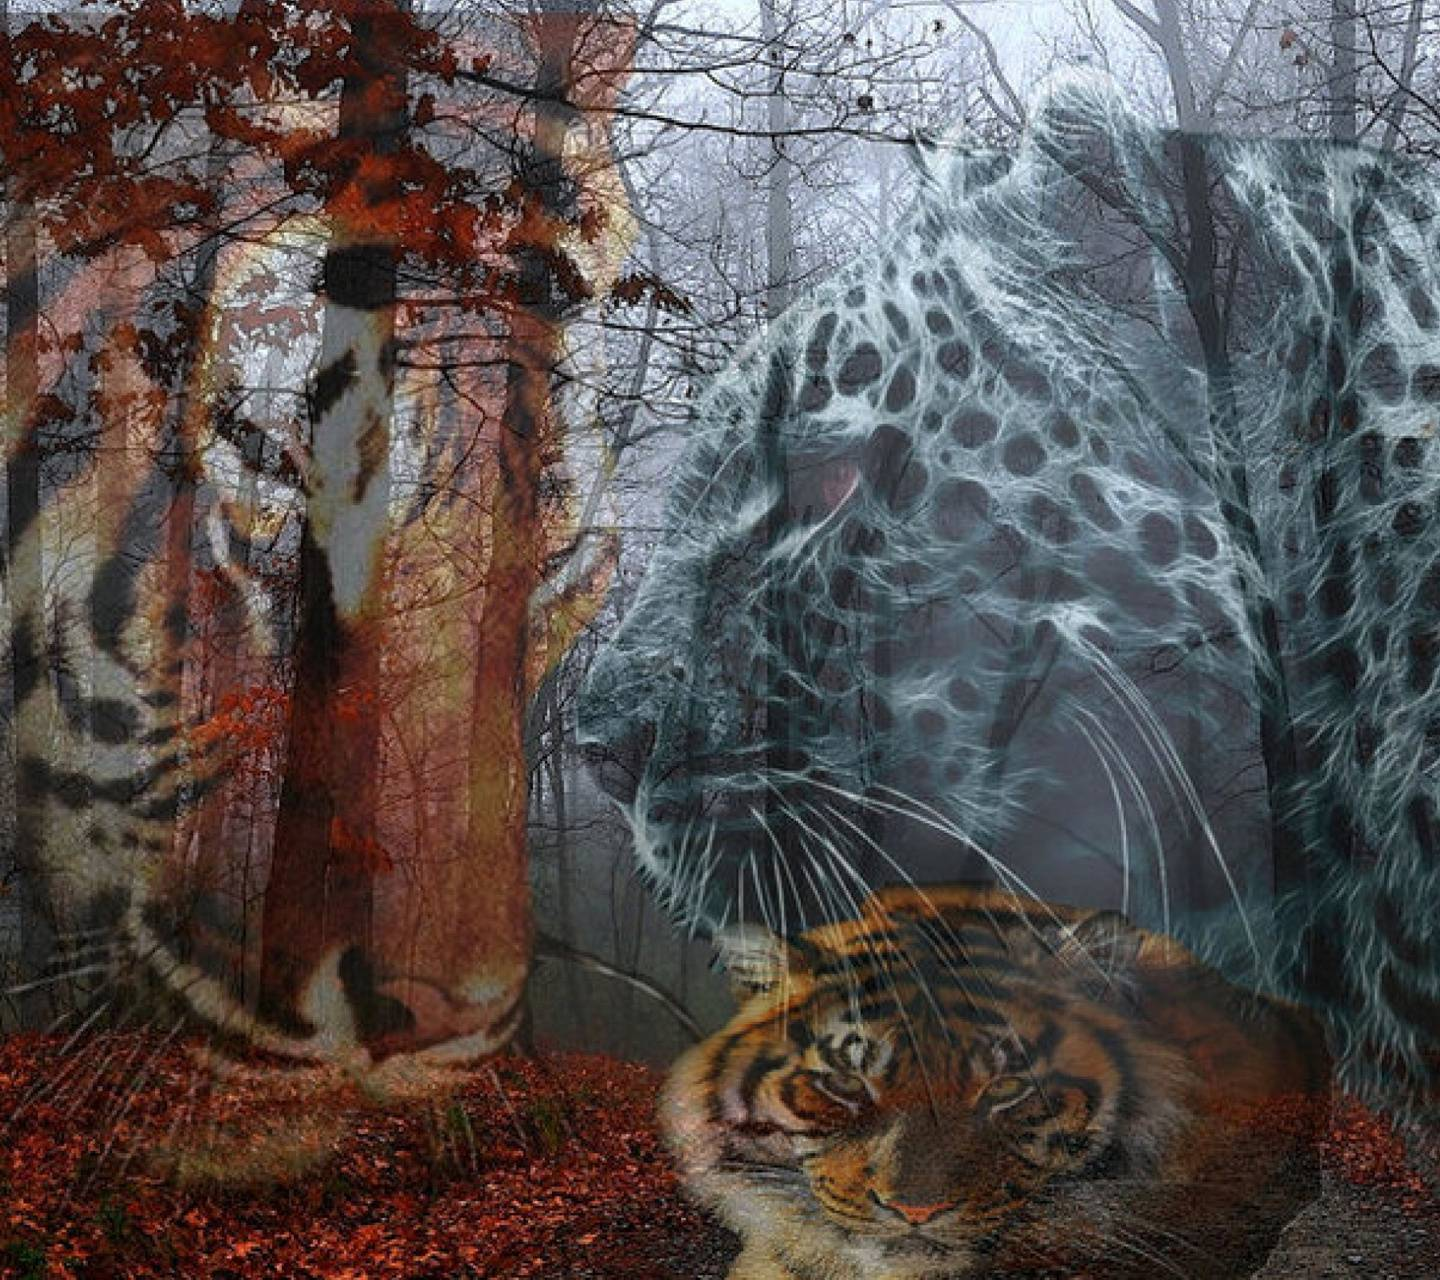 Tiger and Leopard